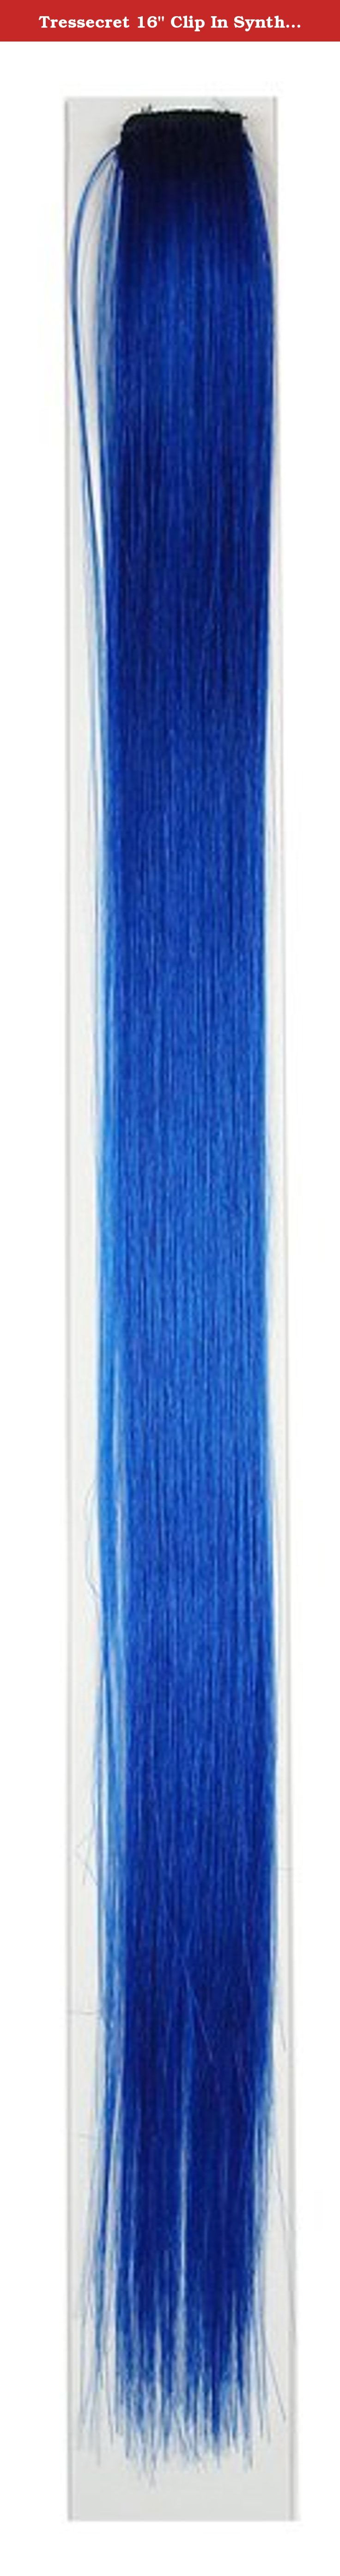 """Tressecret 16"""" Clip In Synthetic Hair Highlight, Blue. Tressecret 16"""" Clip In Synthetic Hair Highlight is a quick and easy way to add a streak of color to your hair. Made from high quality synthetic hair. Silicone Clip holds hair tight for activity."""